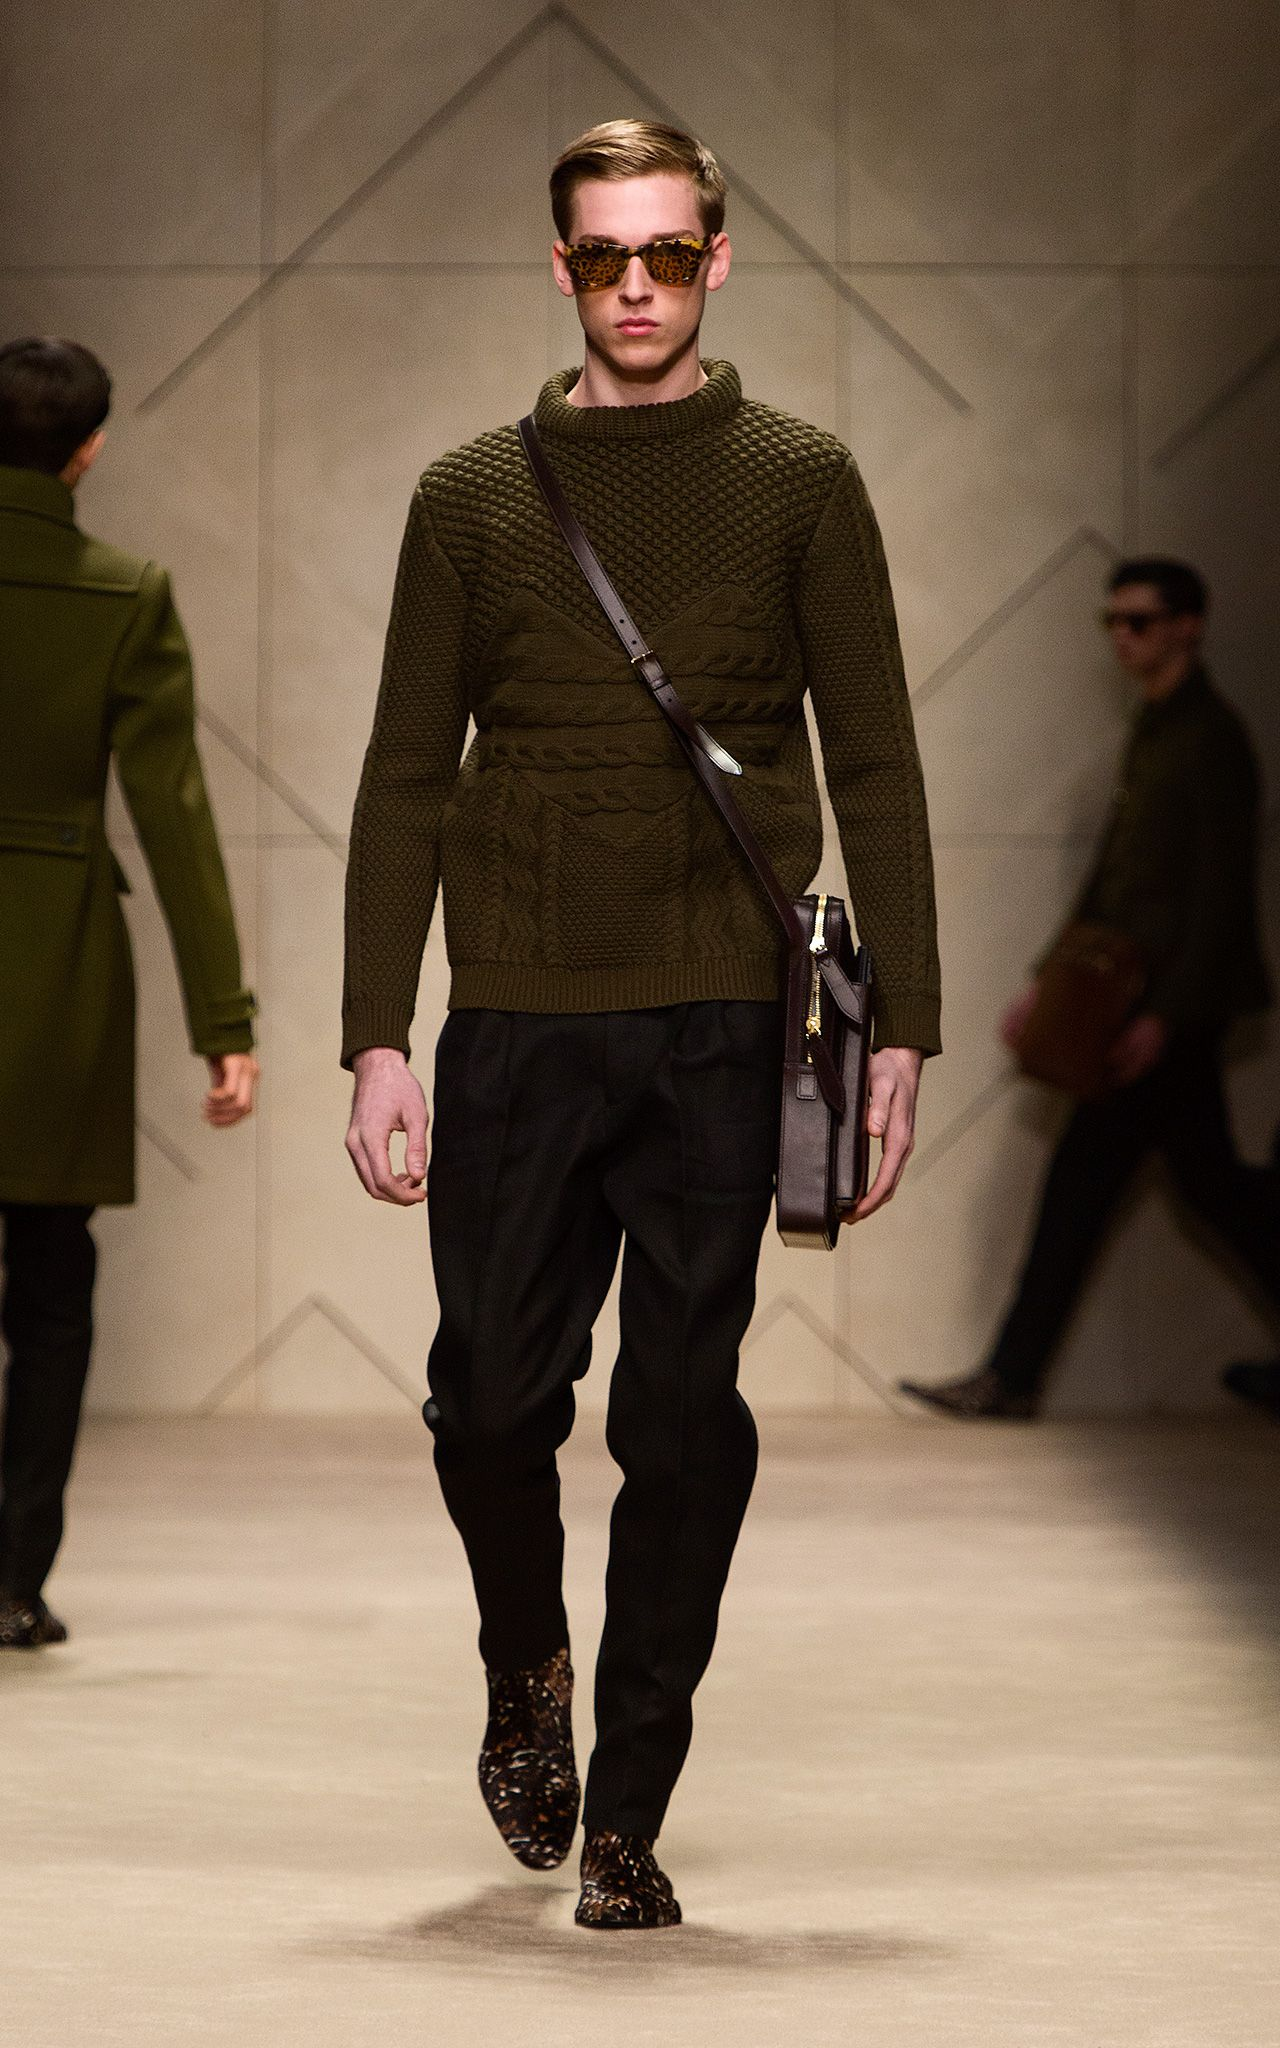 Olive Aran knit sweater and leather satchel on the runway of the Burberry A W13  Menswear show 9e781a8e9f0c5